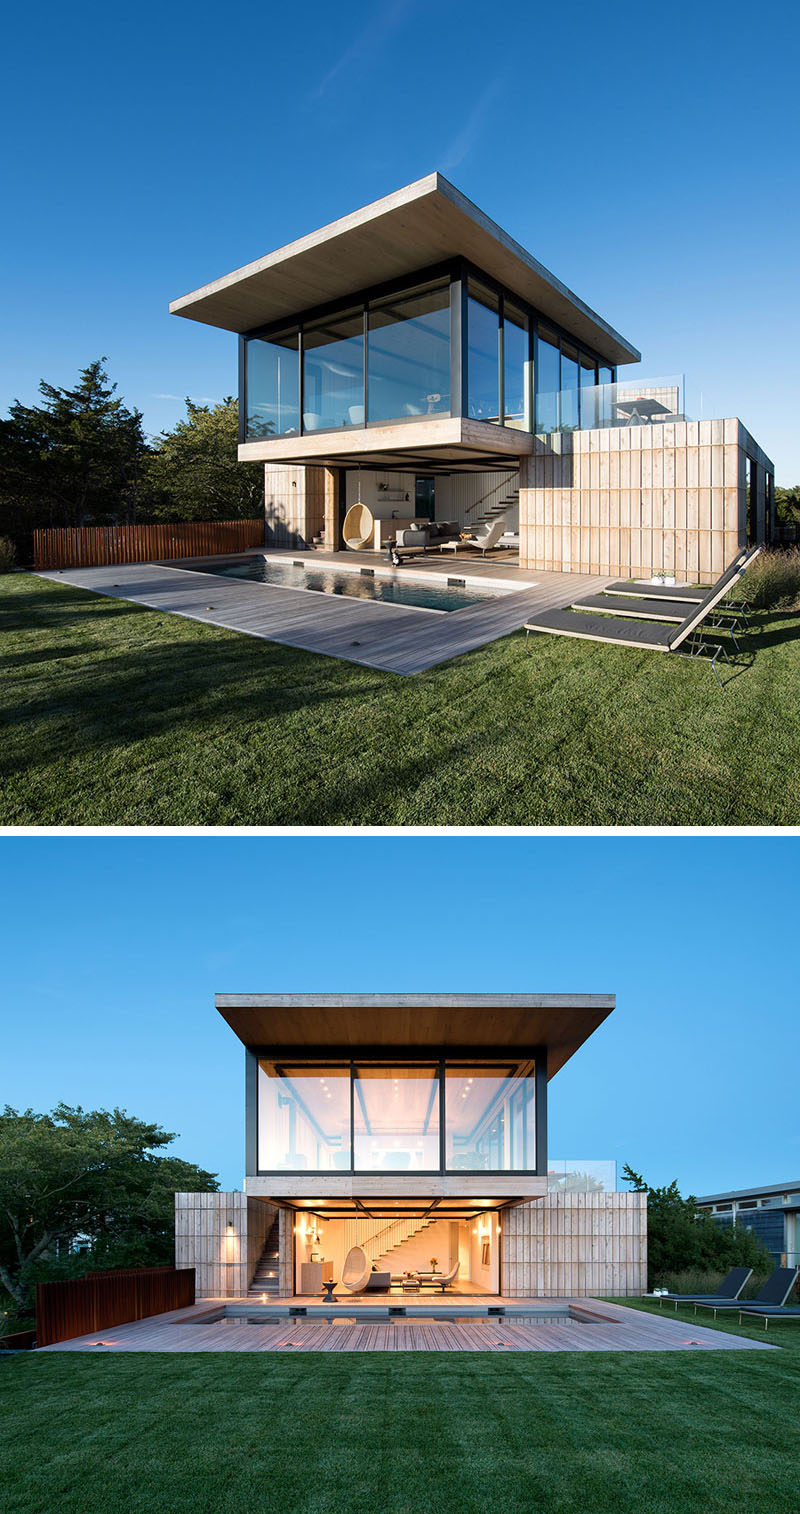 The steel structure of this home allows the upper living level to cantilever out and provides shade to the lower level.